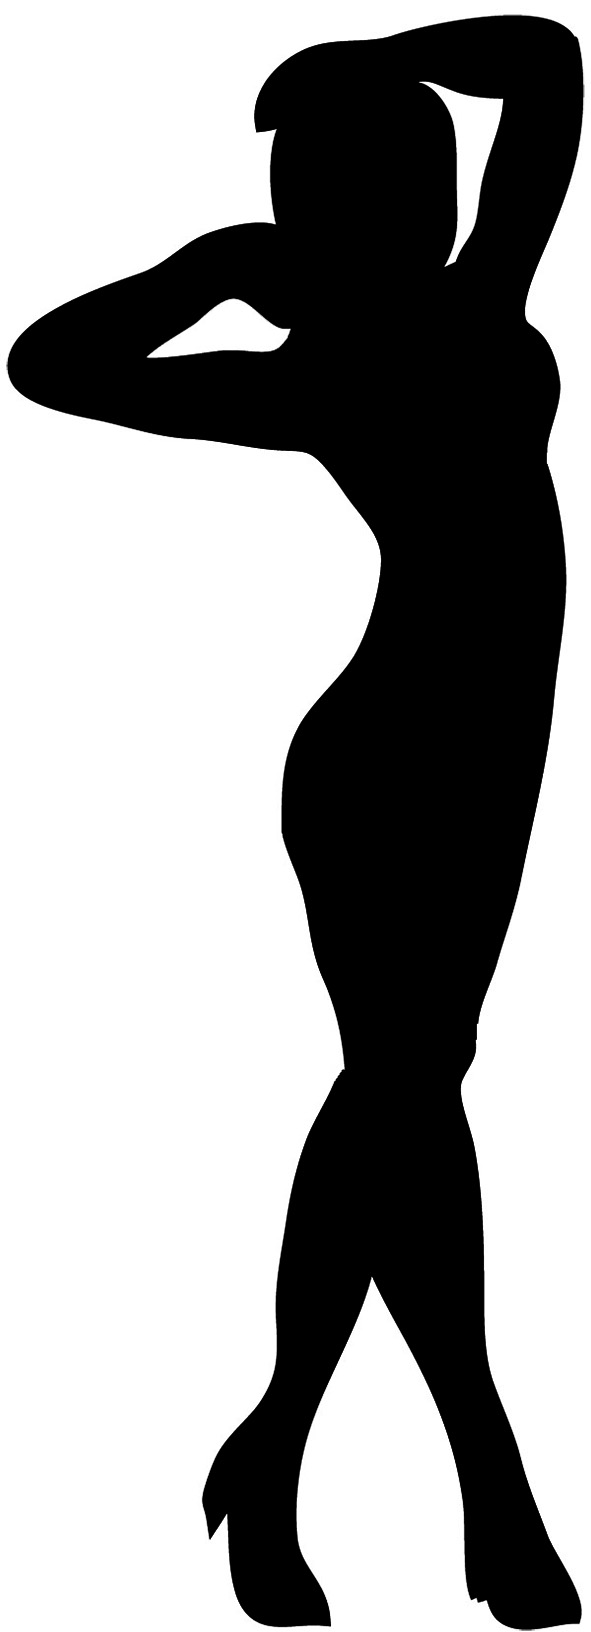 591x1632 Red Fish Clipart